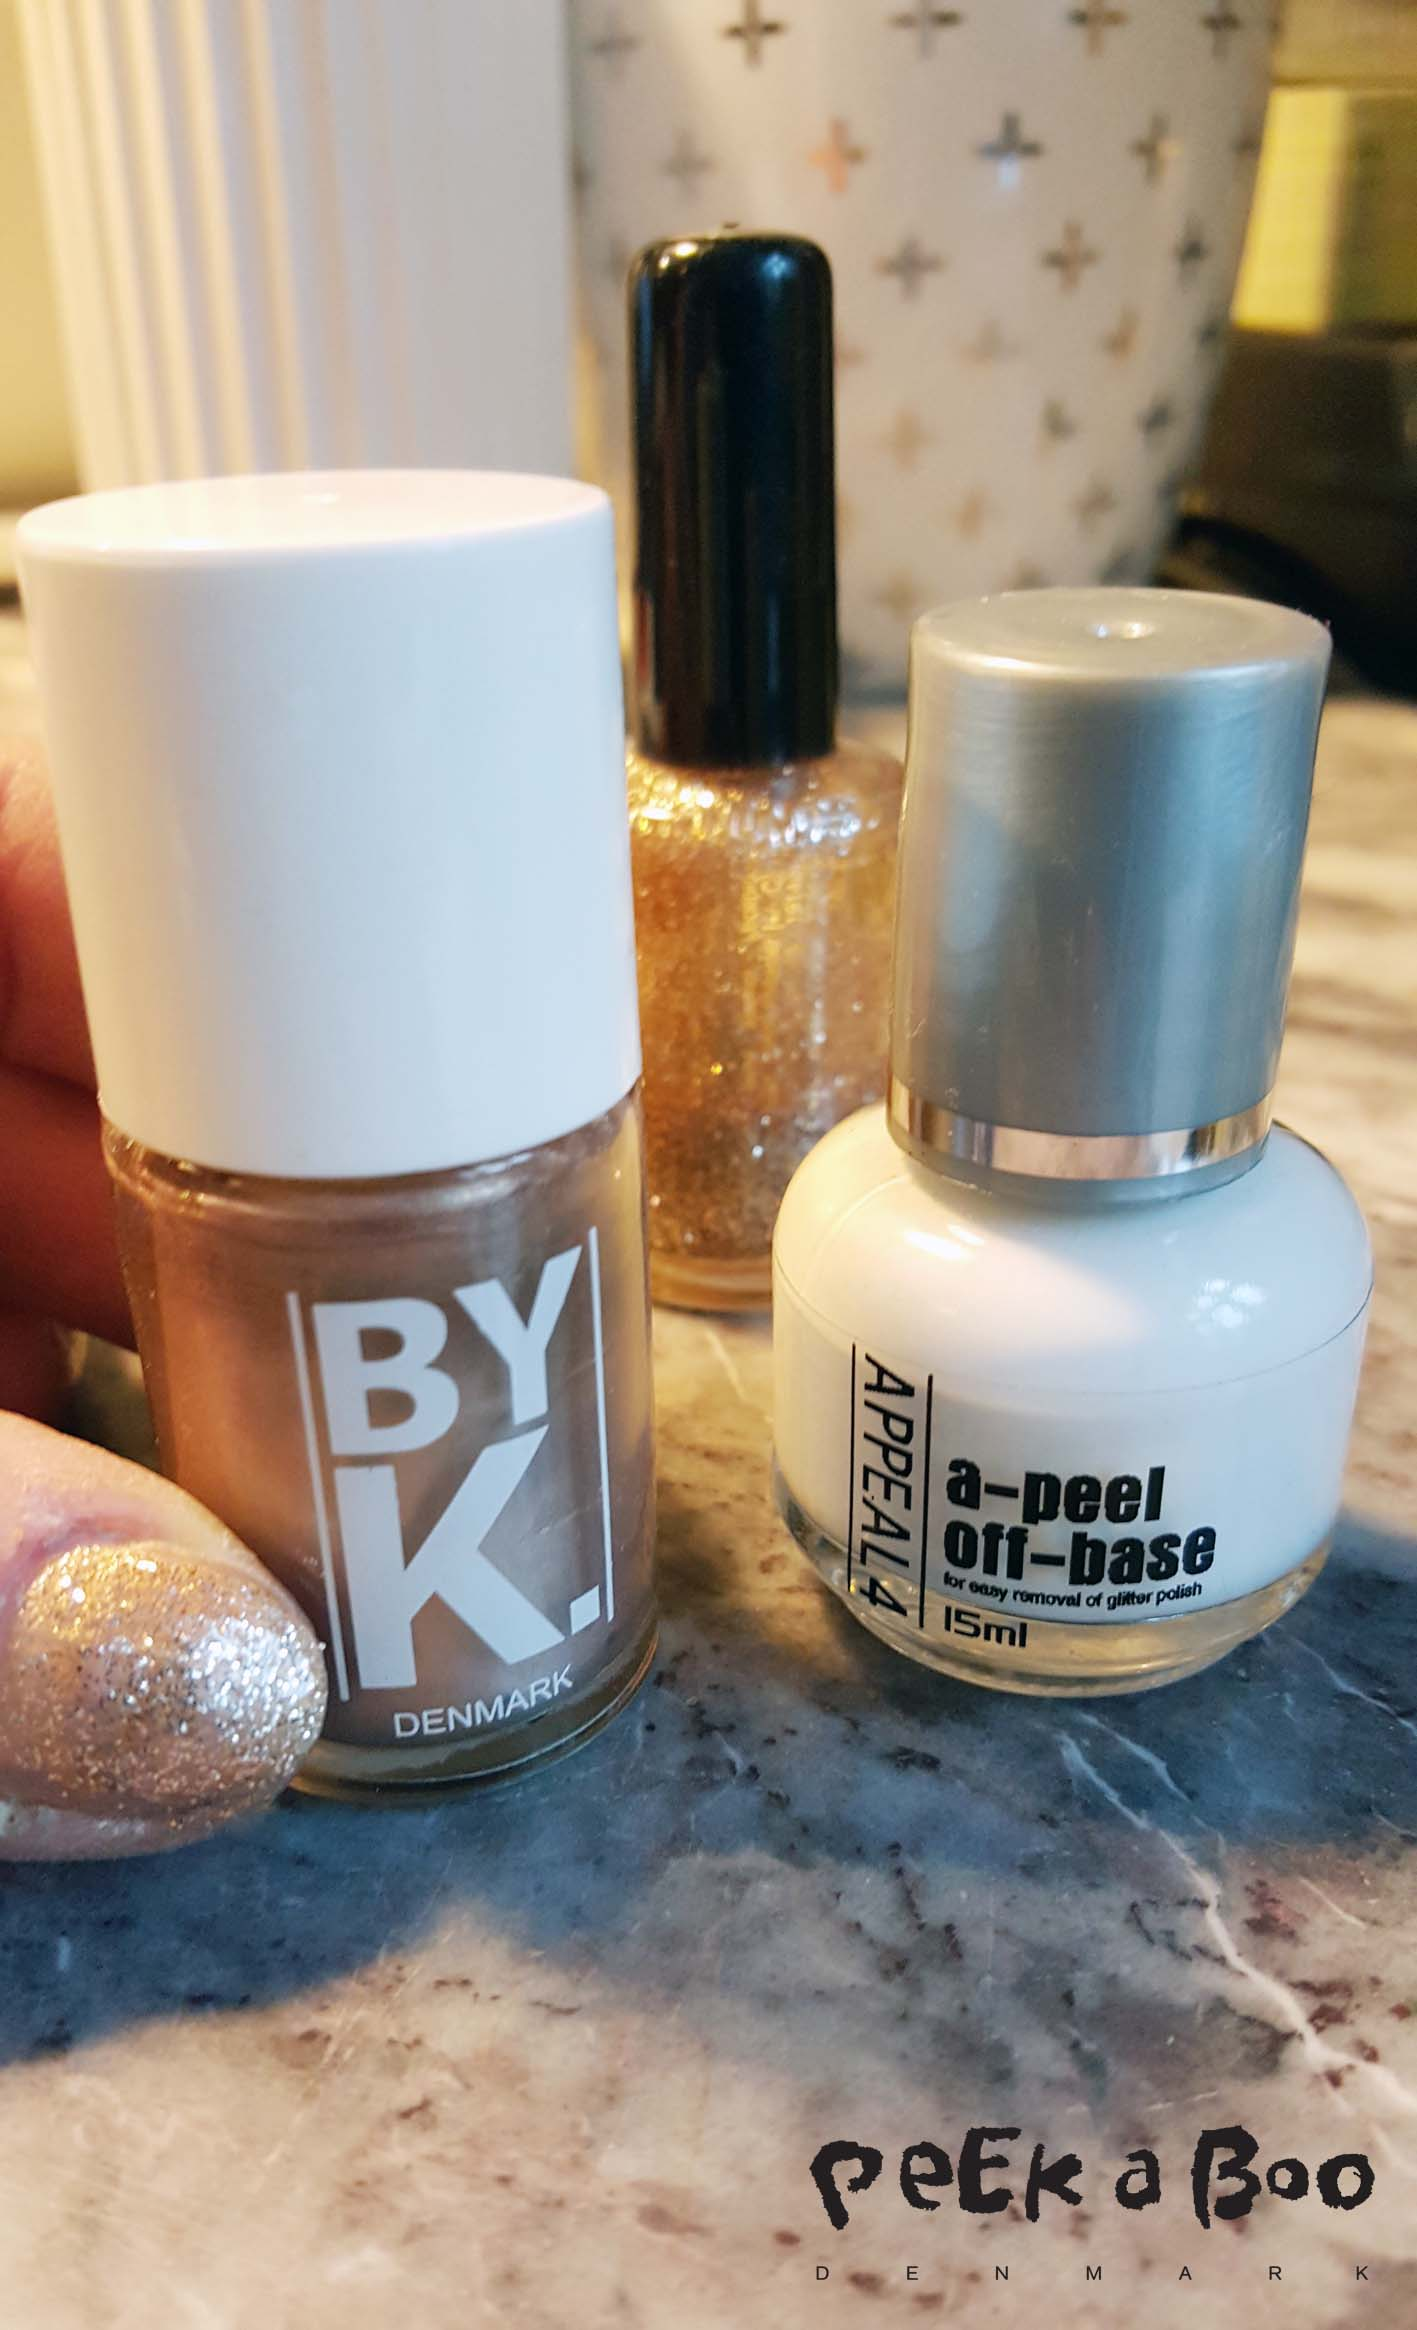 Copper nailpolish from Danish brand by K and peel-off base coat from Appeal4 also a Danish brand.